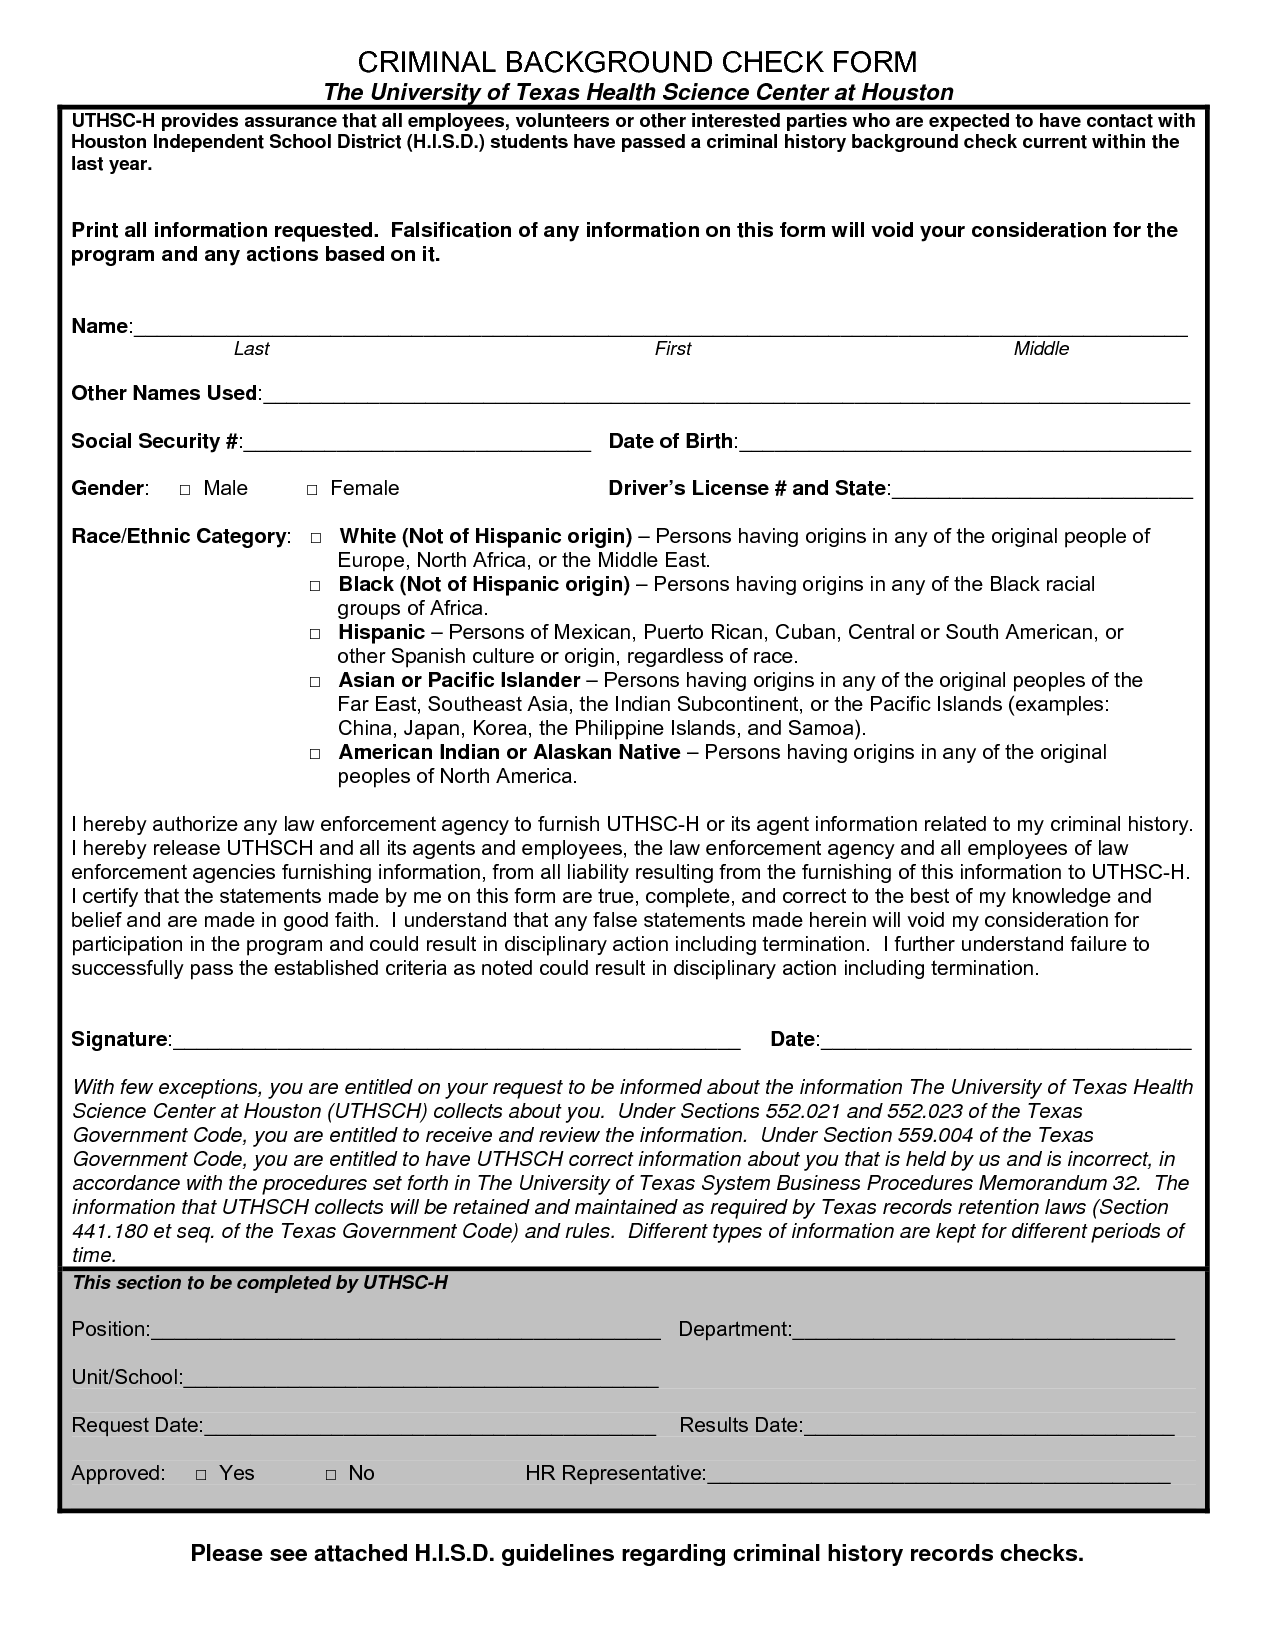 Criminal Background Check Form Template Check Out This Background